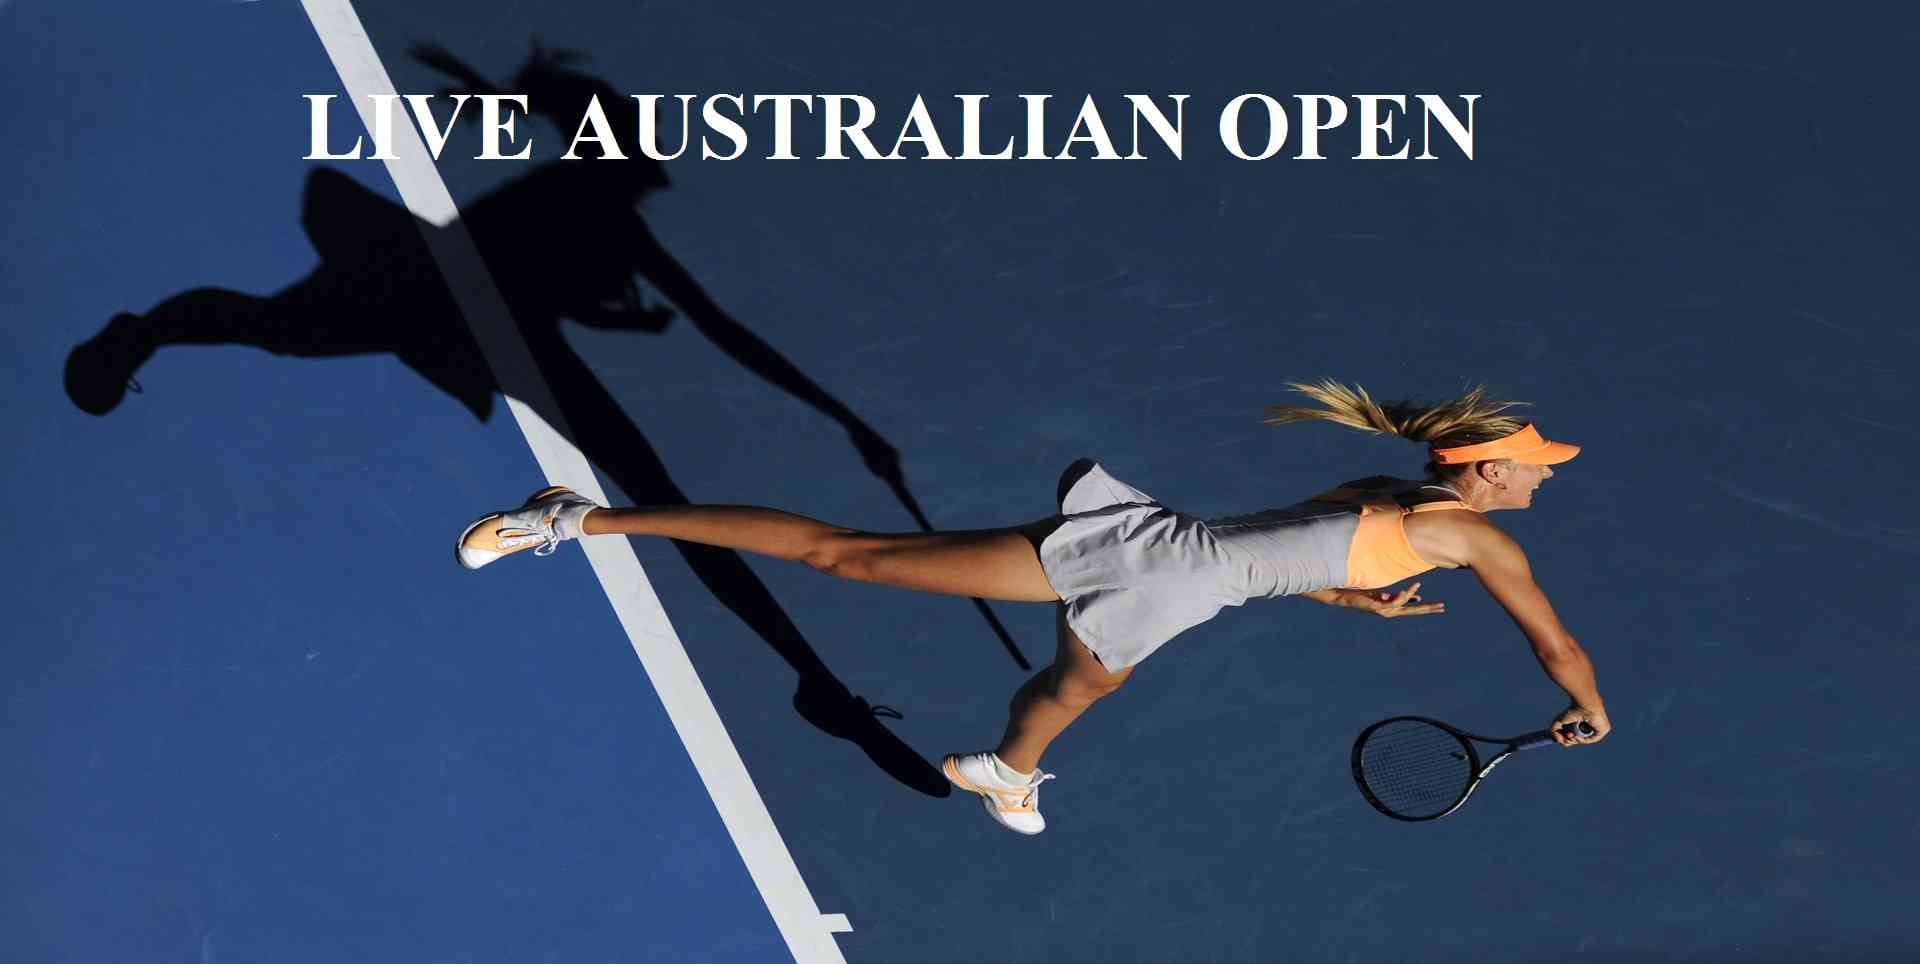 when-and-where-2019-australian-open-tennis-live-will-happen